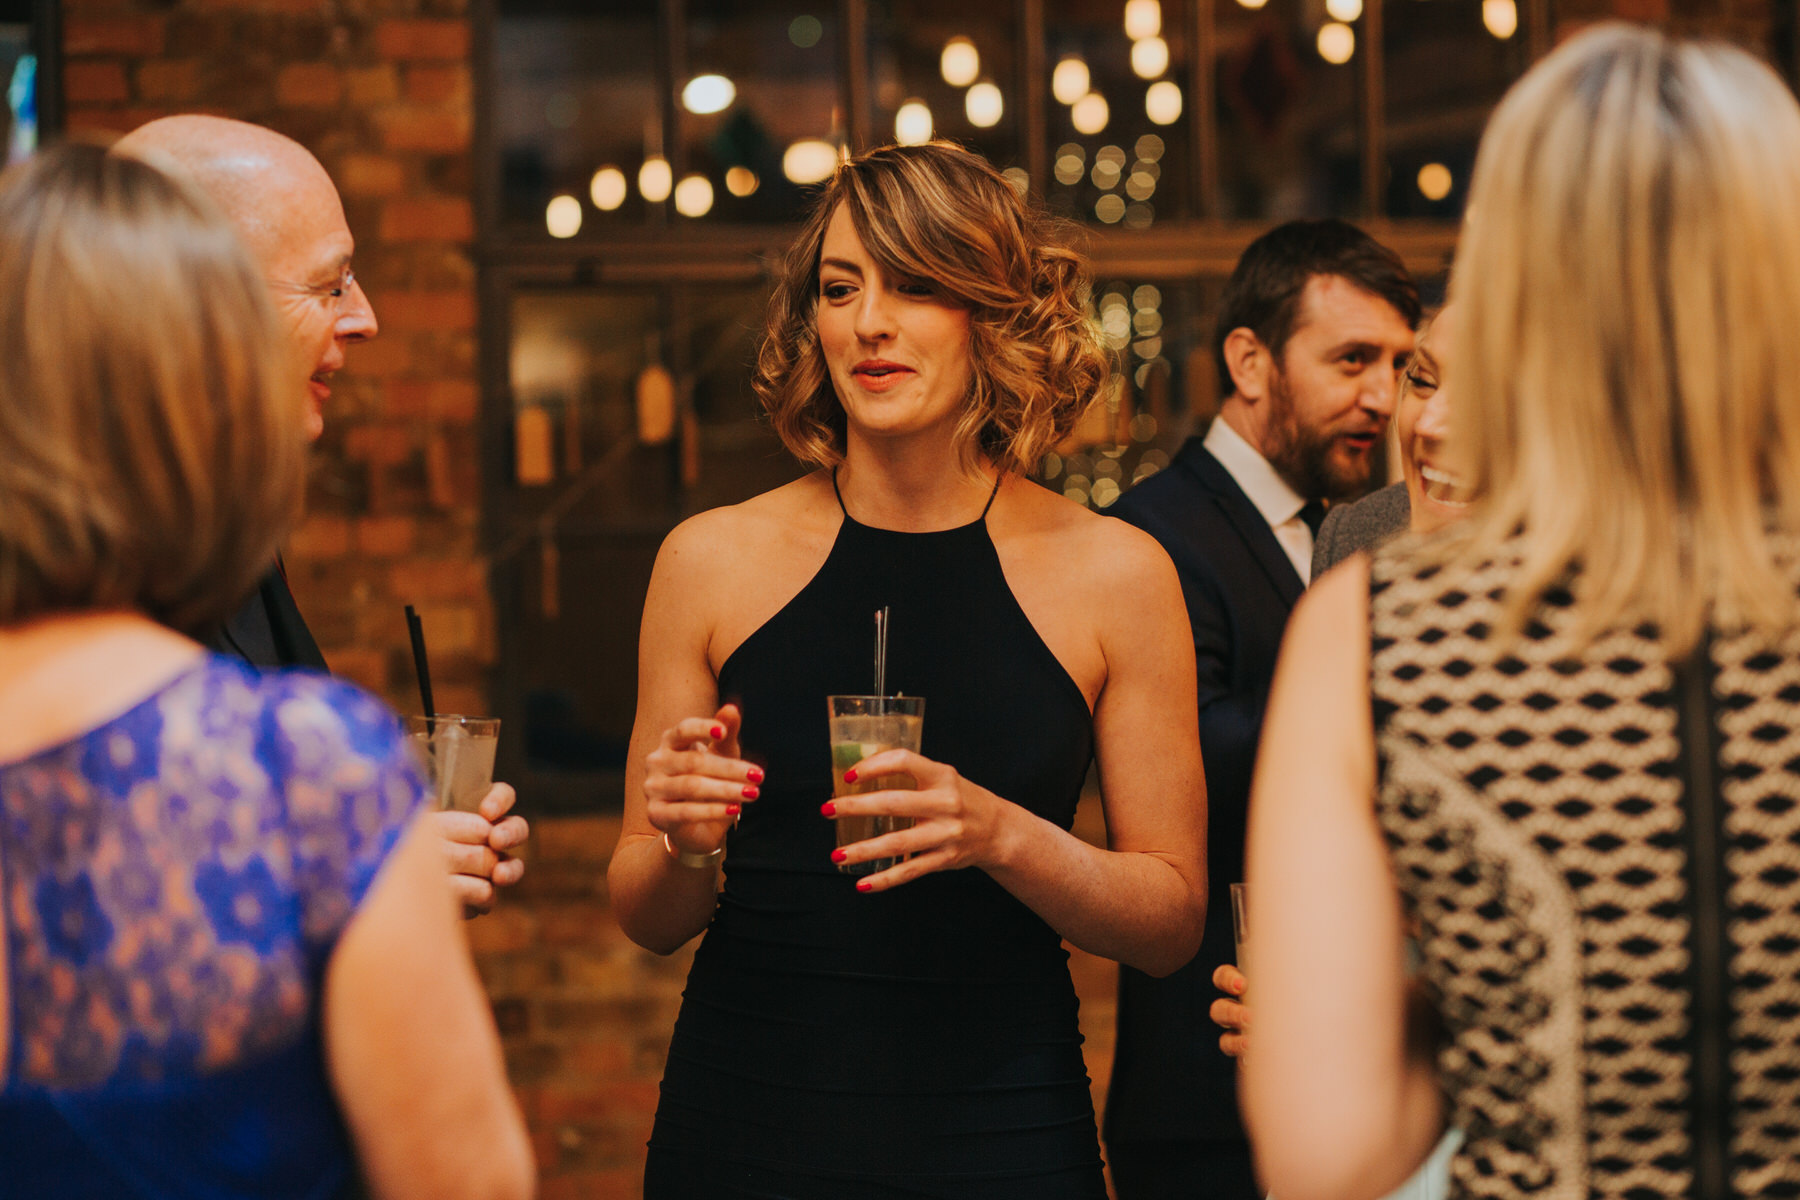 151-St Chads Place wedding guest candid photo coverage.jpg